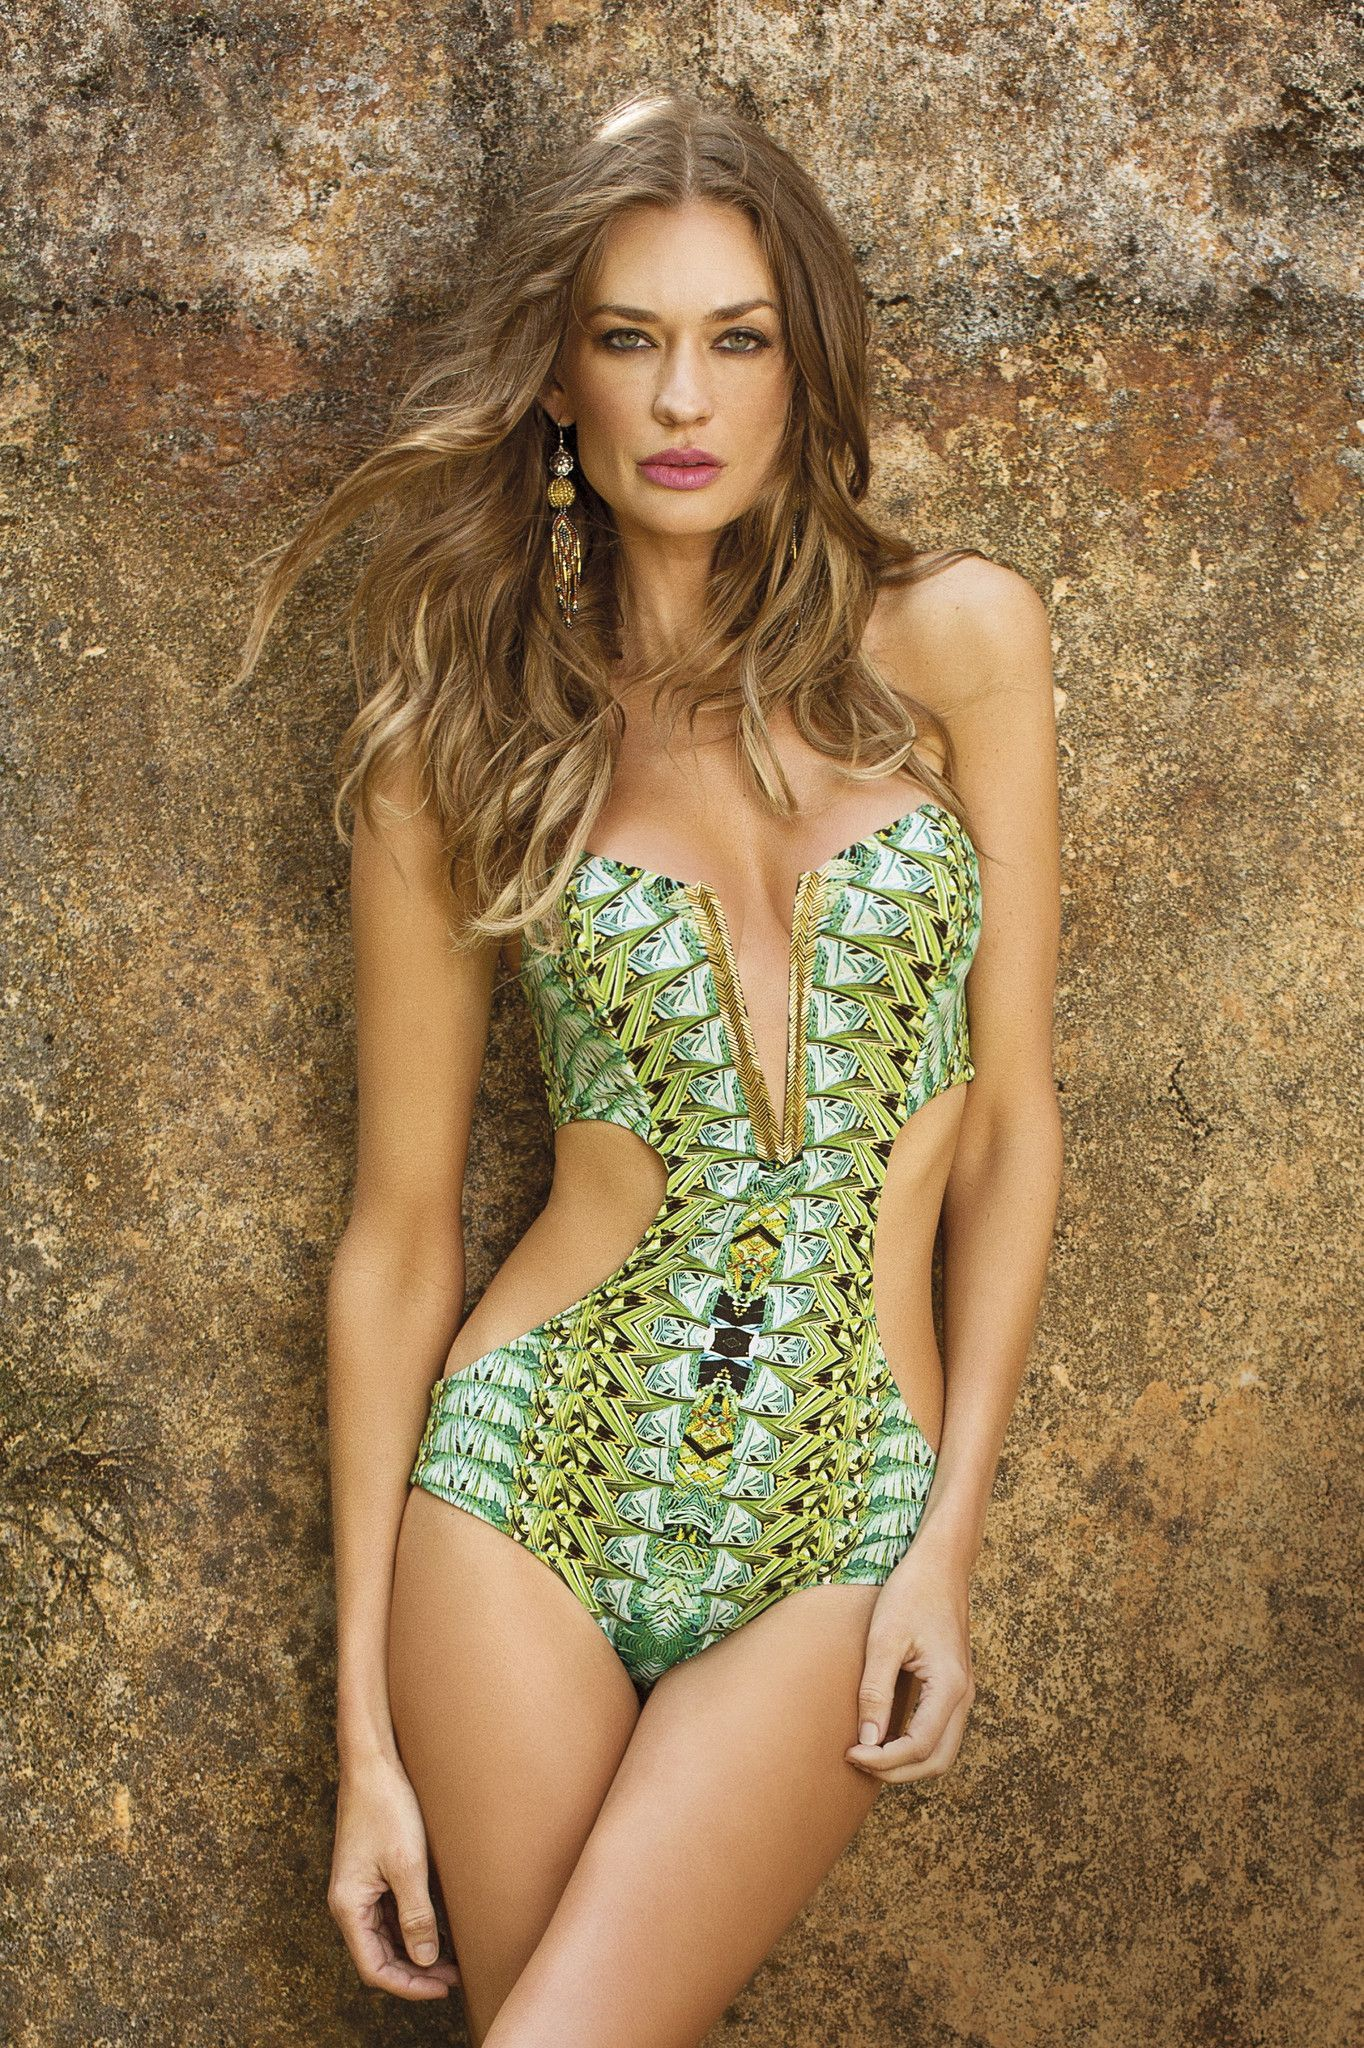 Forum on this topic: Paradizia Siren In Love 2012 Swimwear Collection, paradizia-siren-in-love-2012-swimwear-collection/